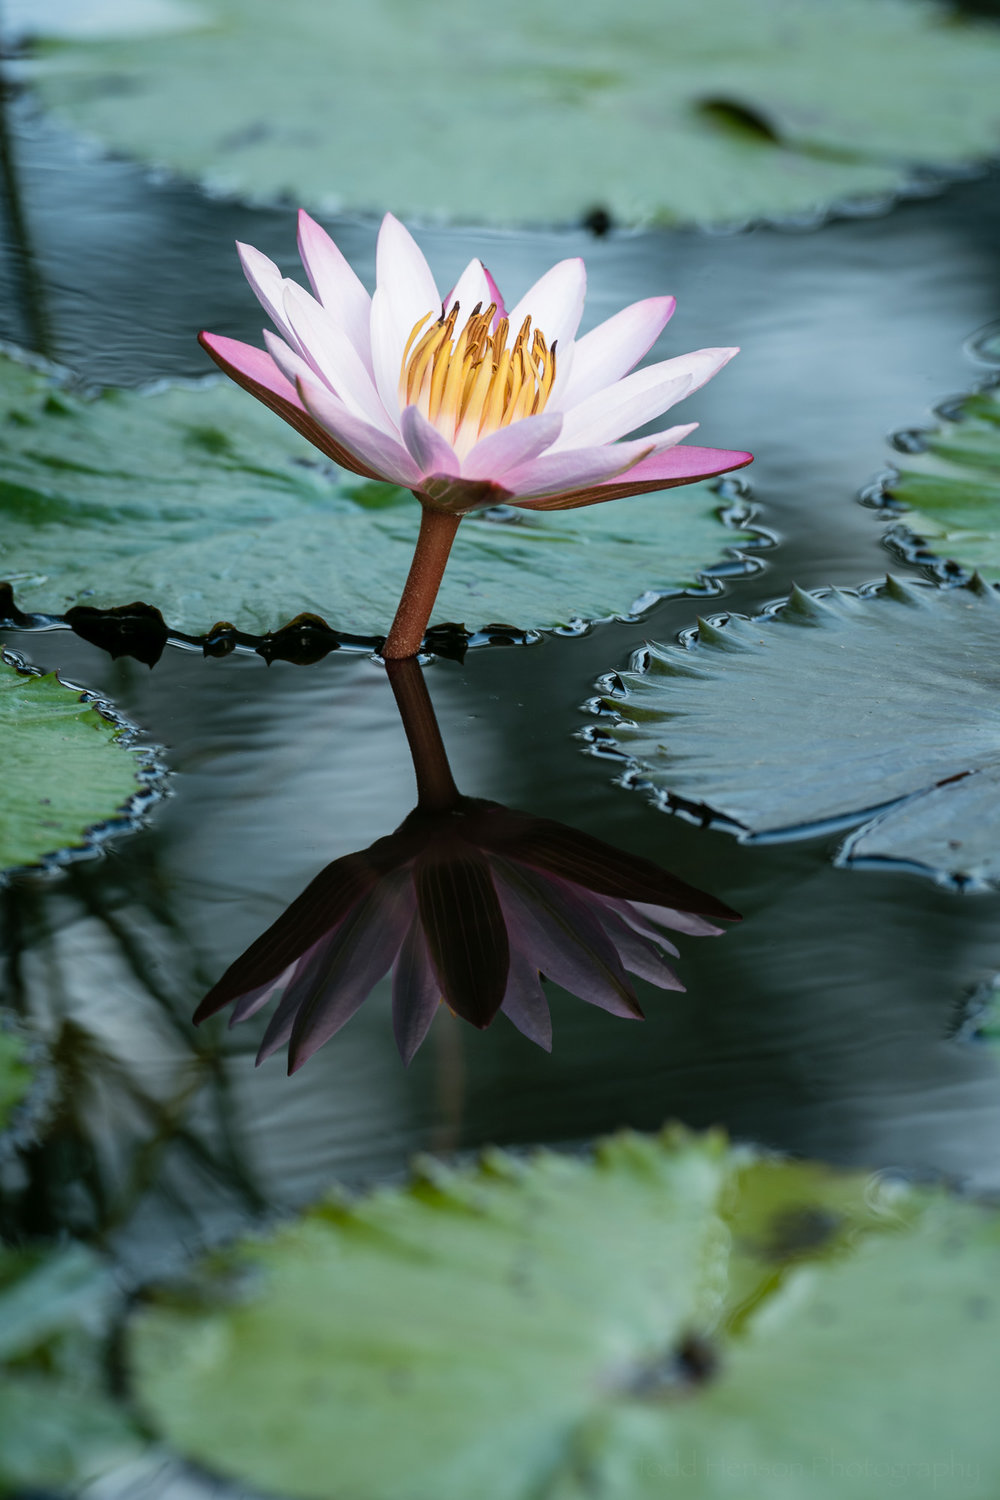 Pink water lily with minimum polarizing effect. I like the enhanced reflection but not the glare on the lily pads.